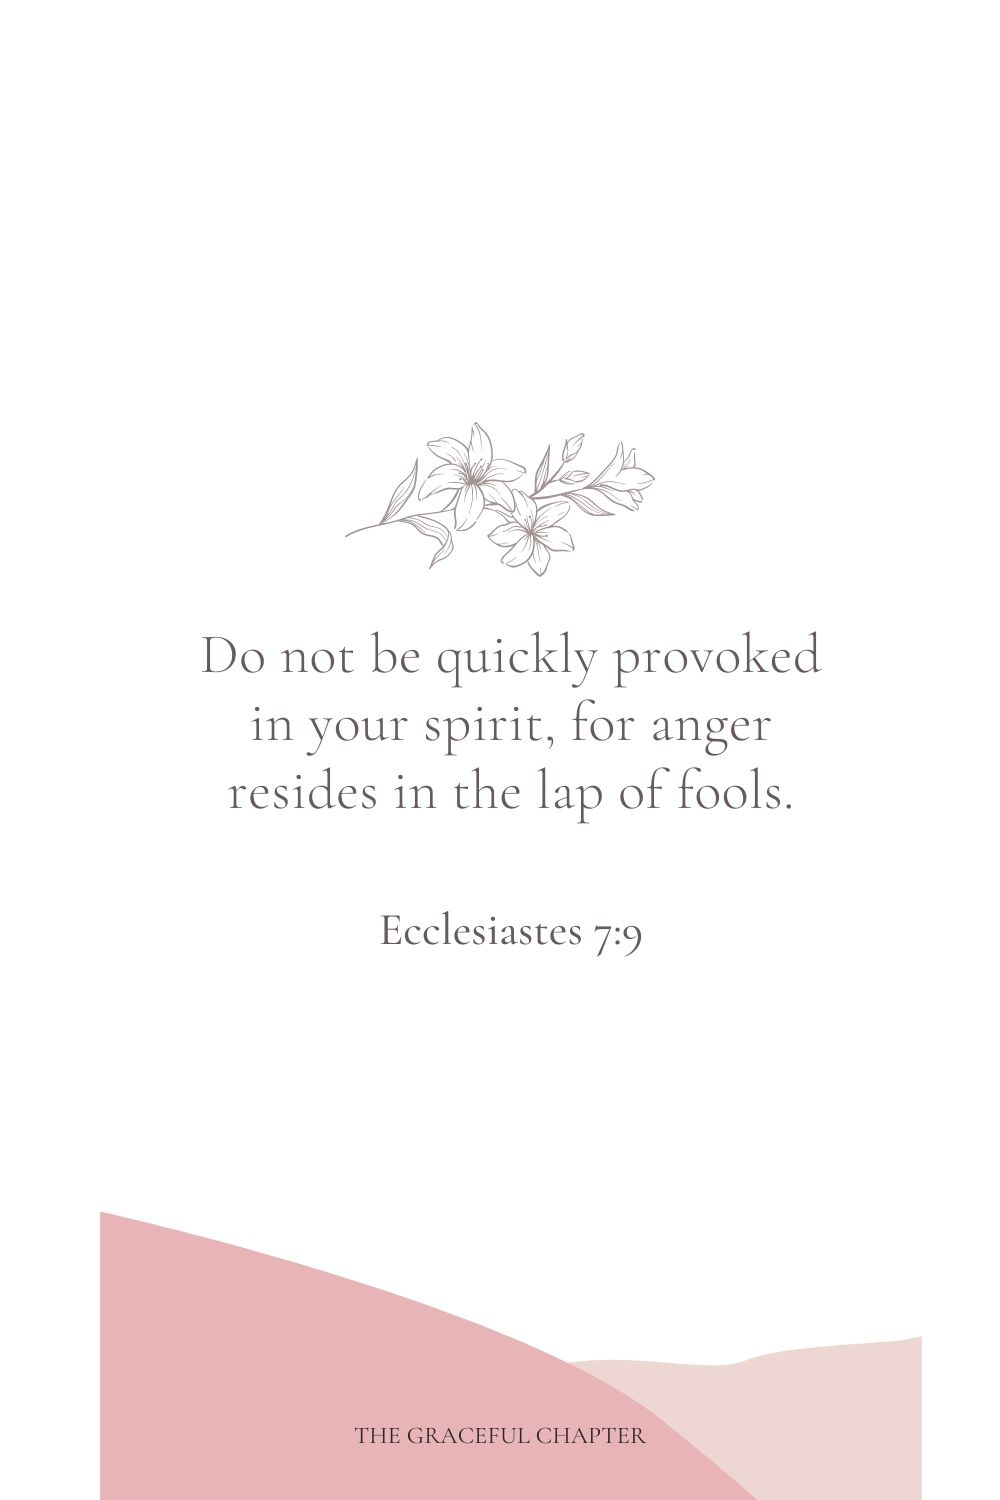 Do not be quickly provoked in your spirit, for anger resides in the lap of fools. Ecclesiastes 7:9